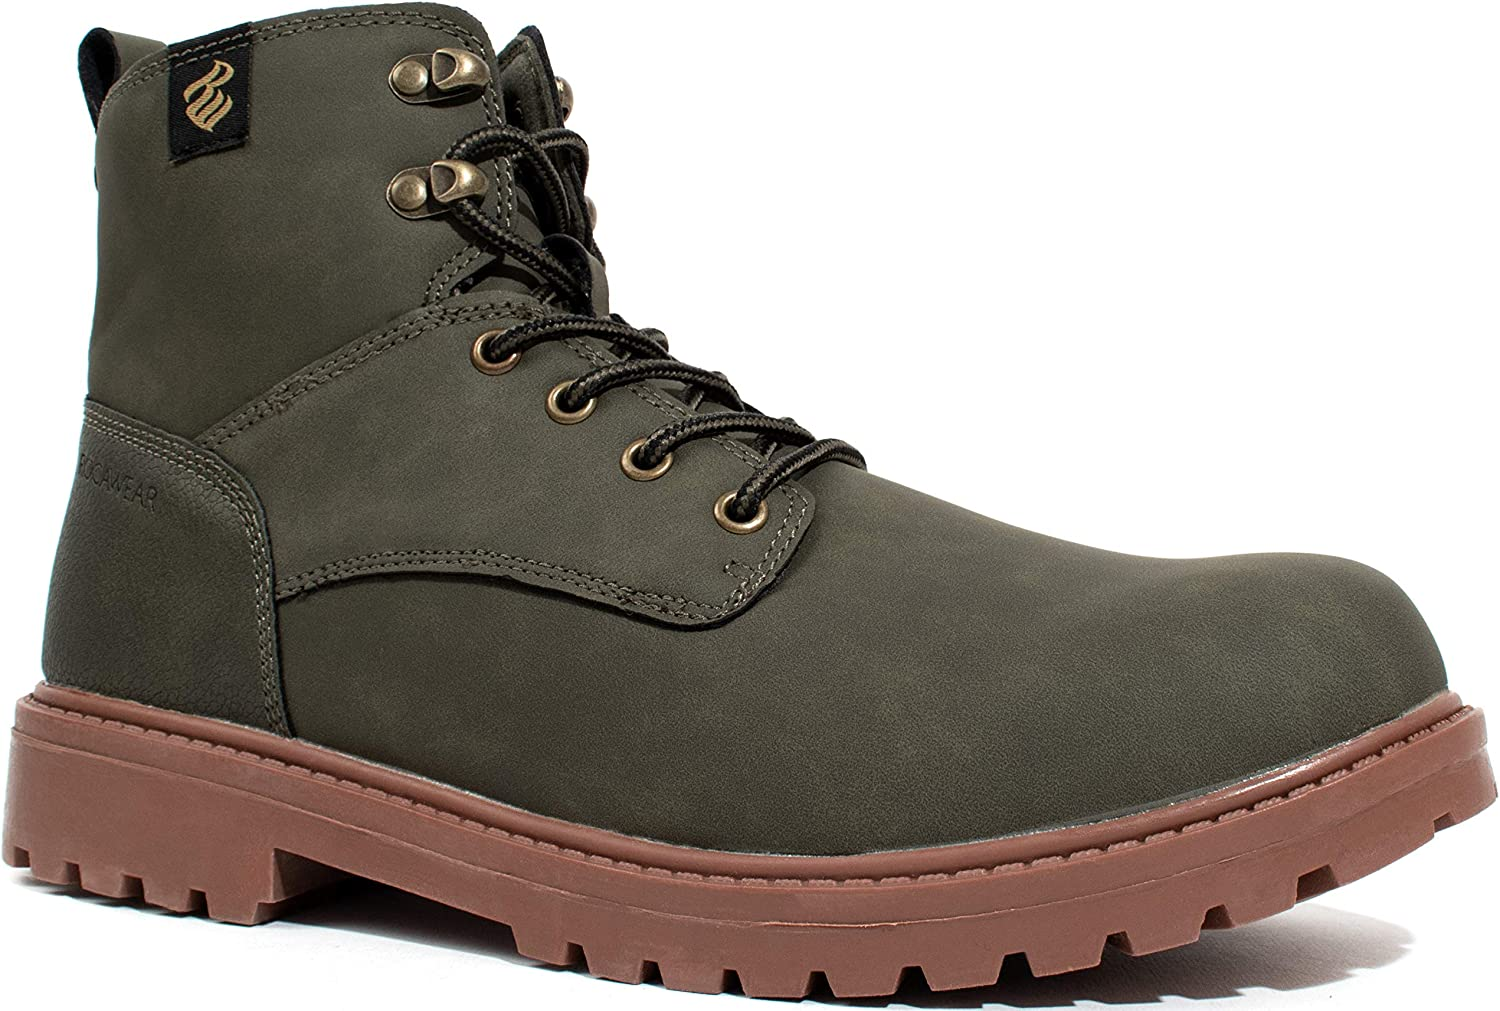 Rocawear Boots for Men, PVC Sole, Available in Stylish Men's Boots